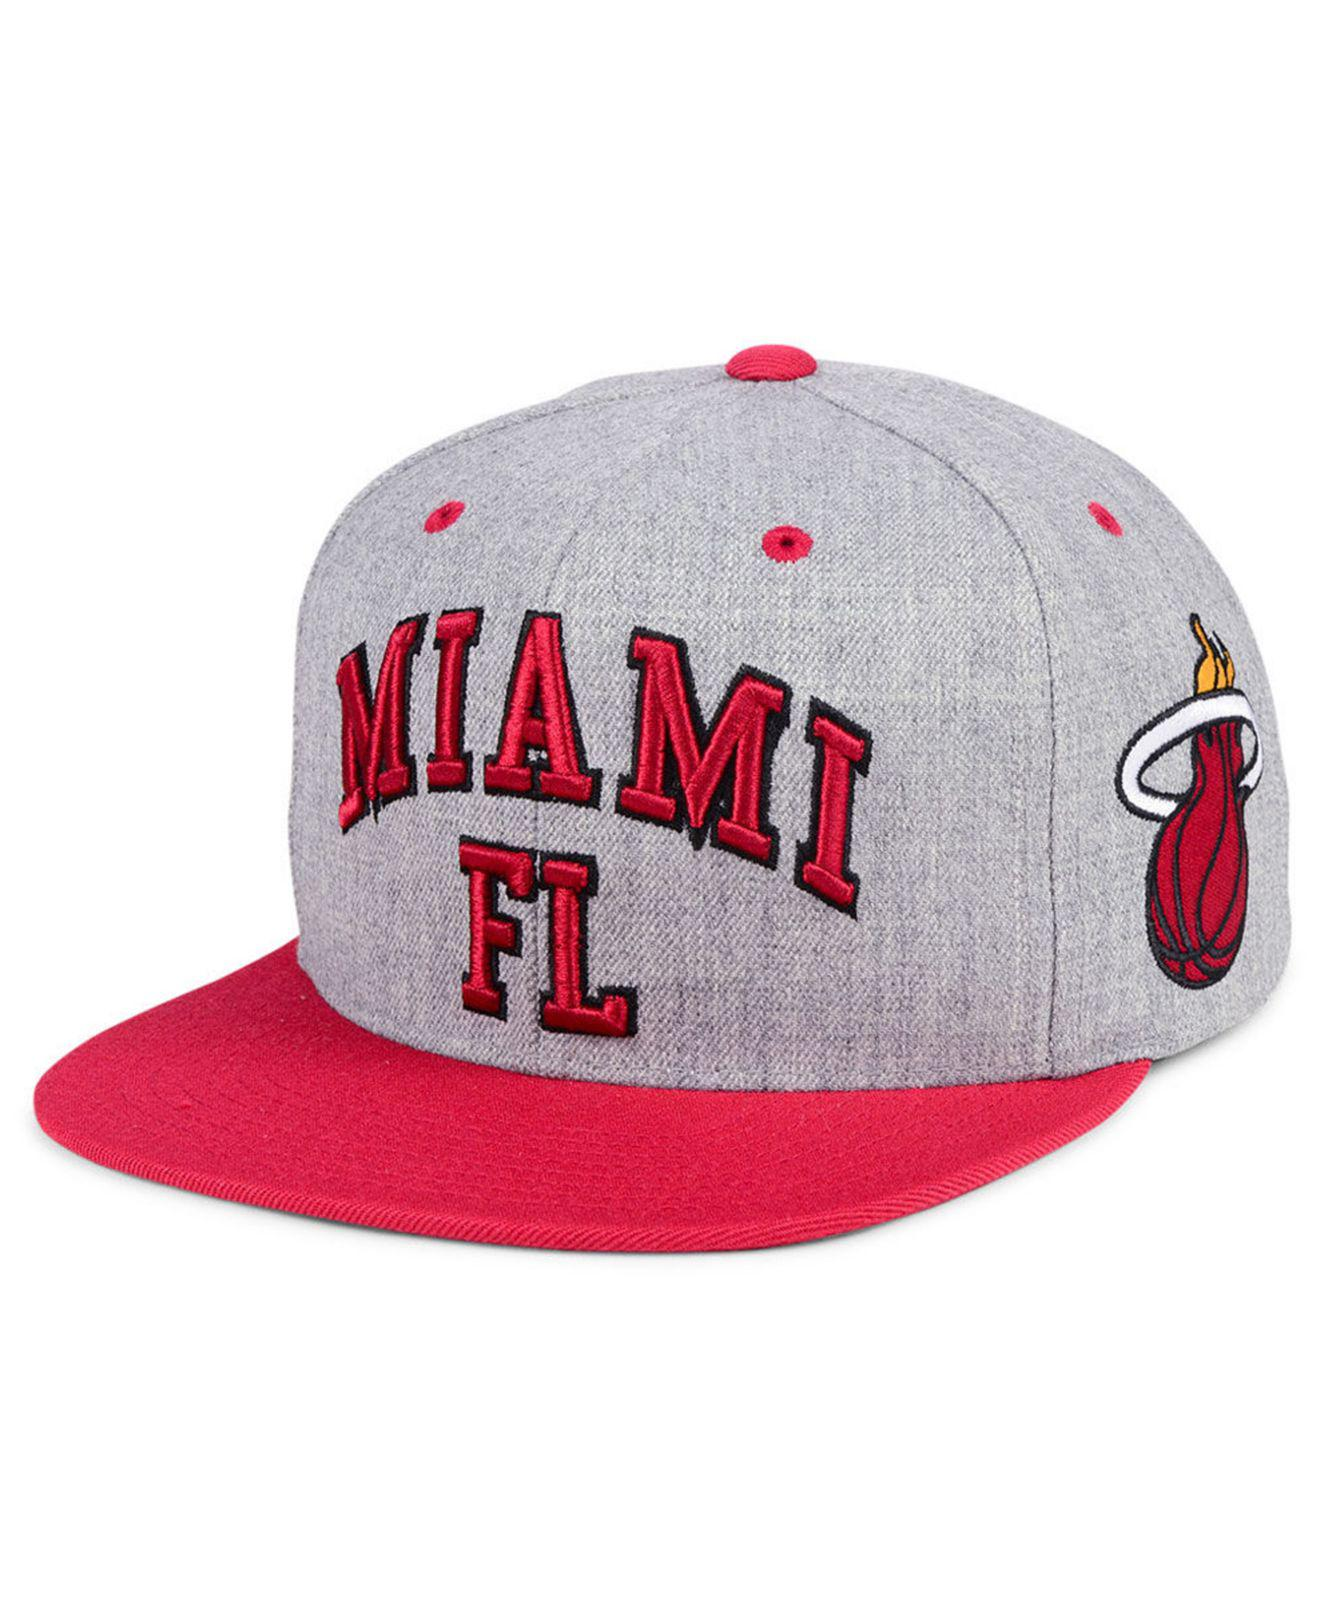 check out 1051d 61bdb Mitchell   Ness. Men s Miami Heat Side Panel Cropped Snapback Cap